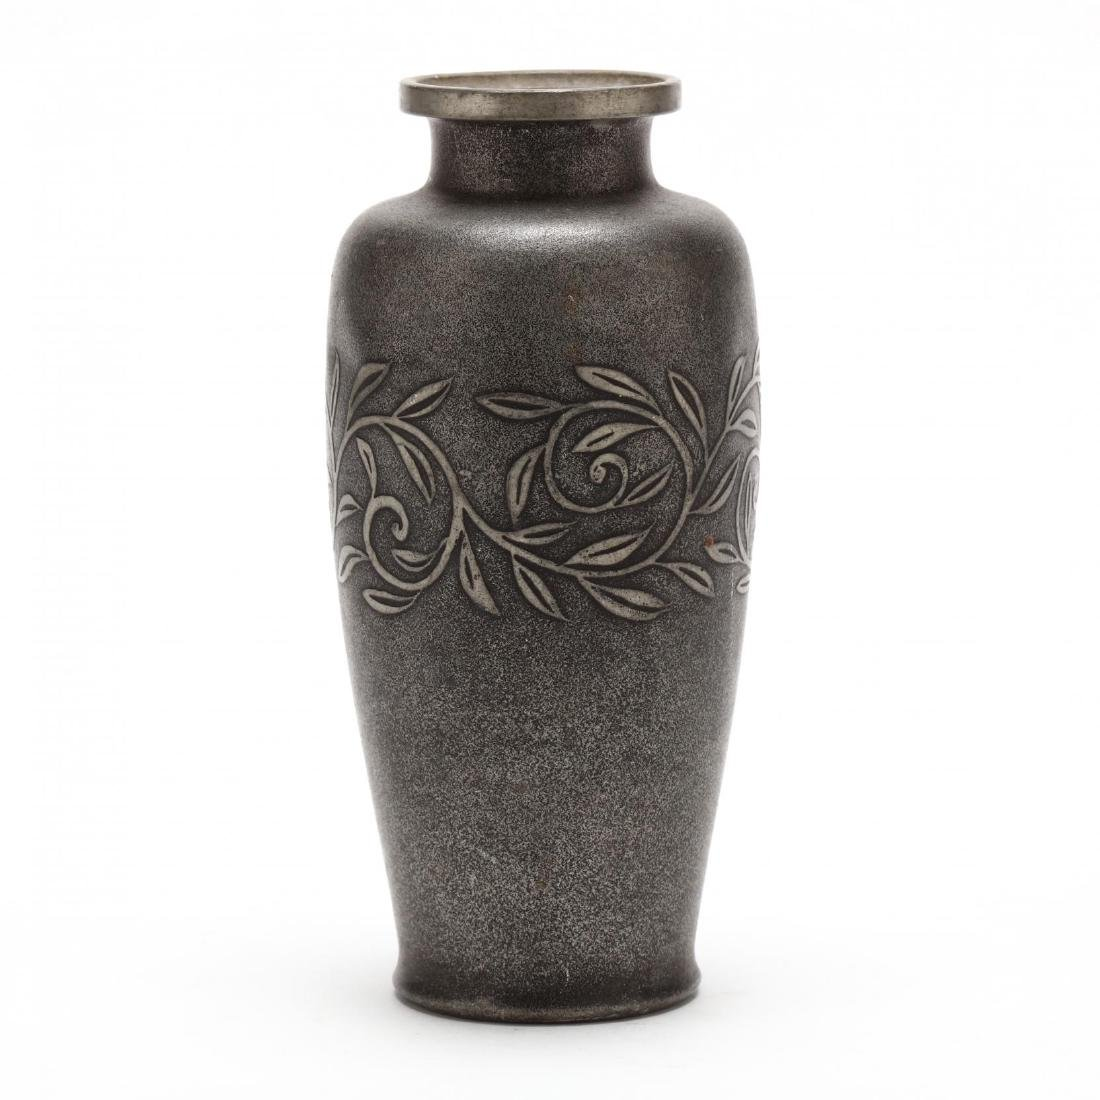 An Asian Pewter Vase with Vine Decoration - 3